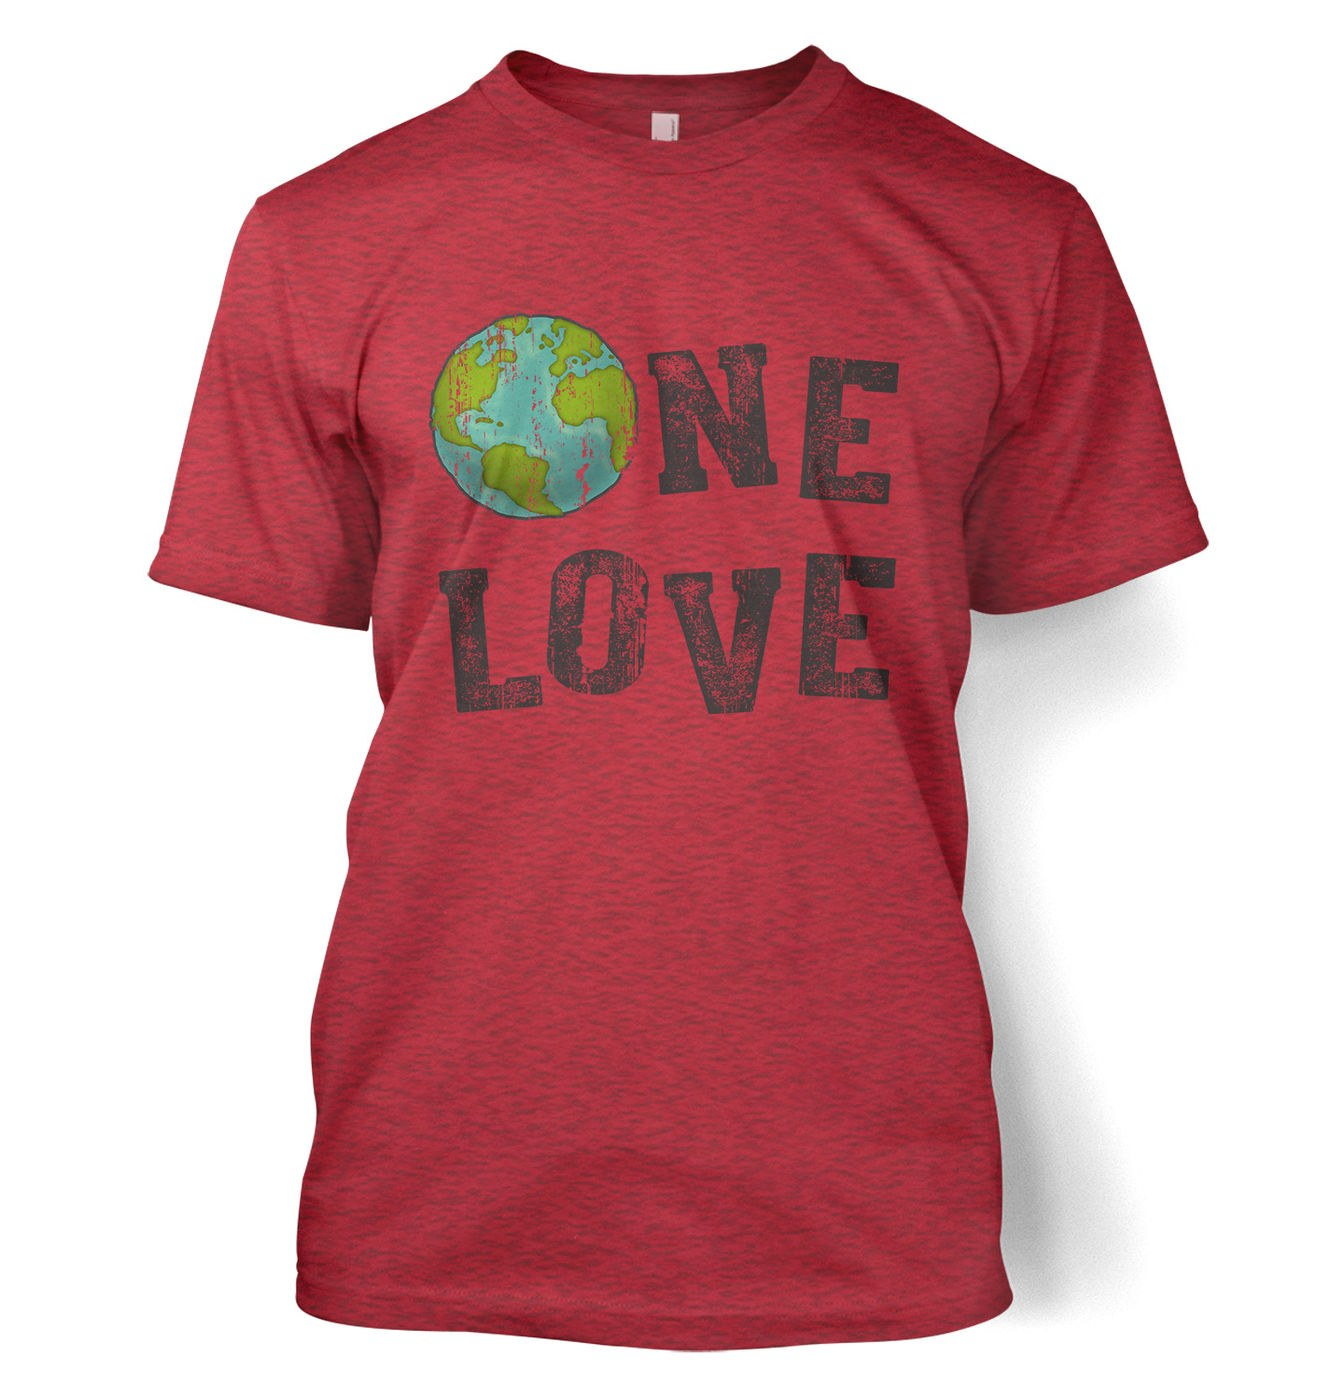 One Love (Earth) t-shirt by Something Geeky